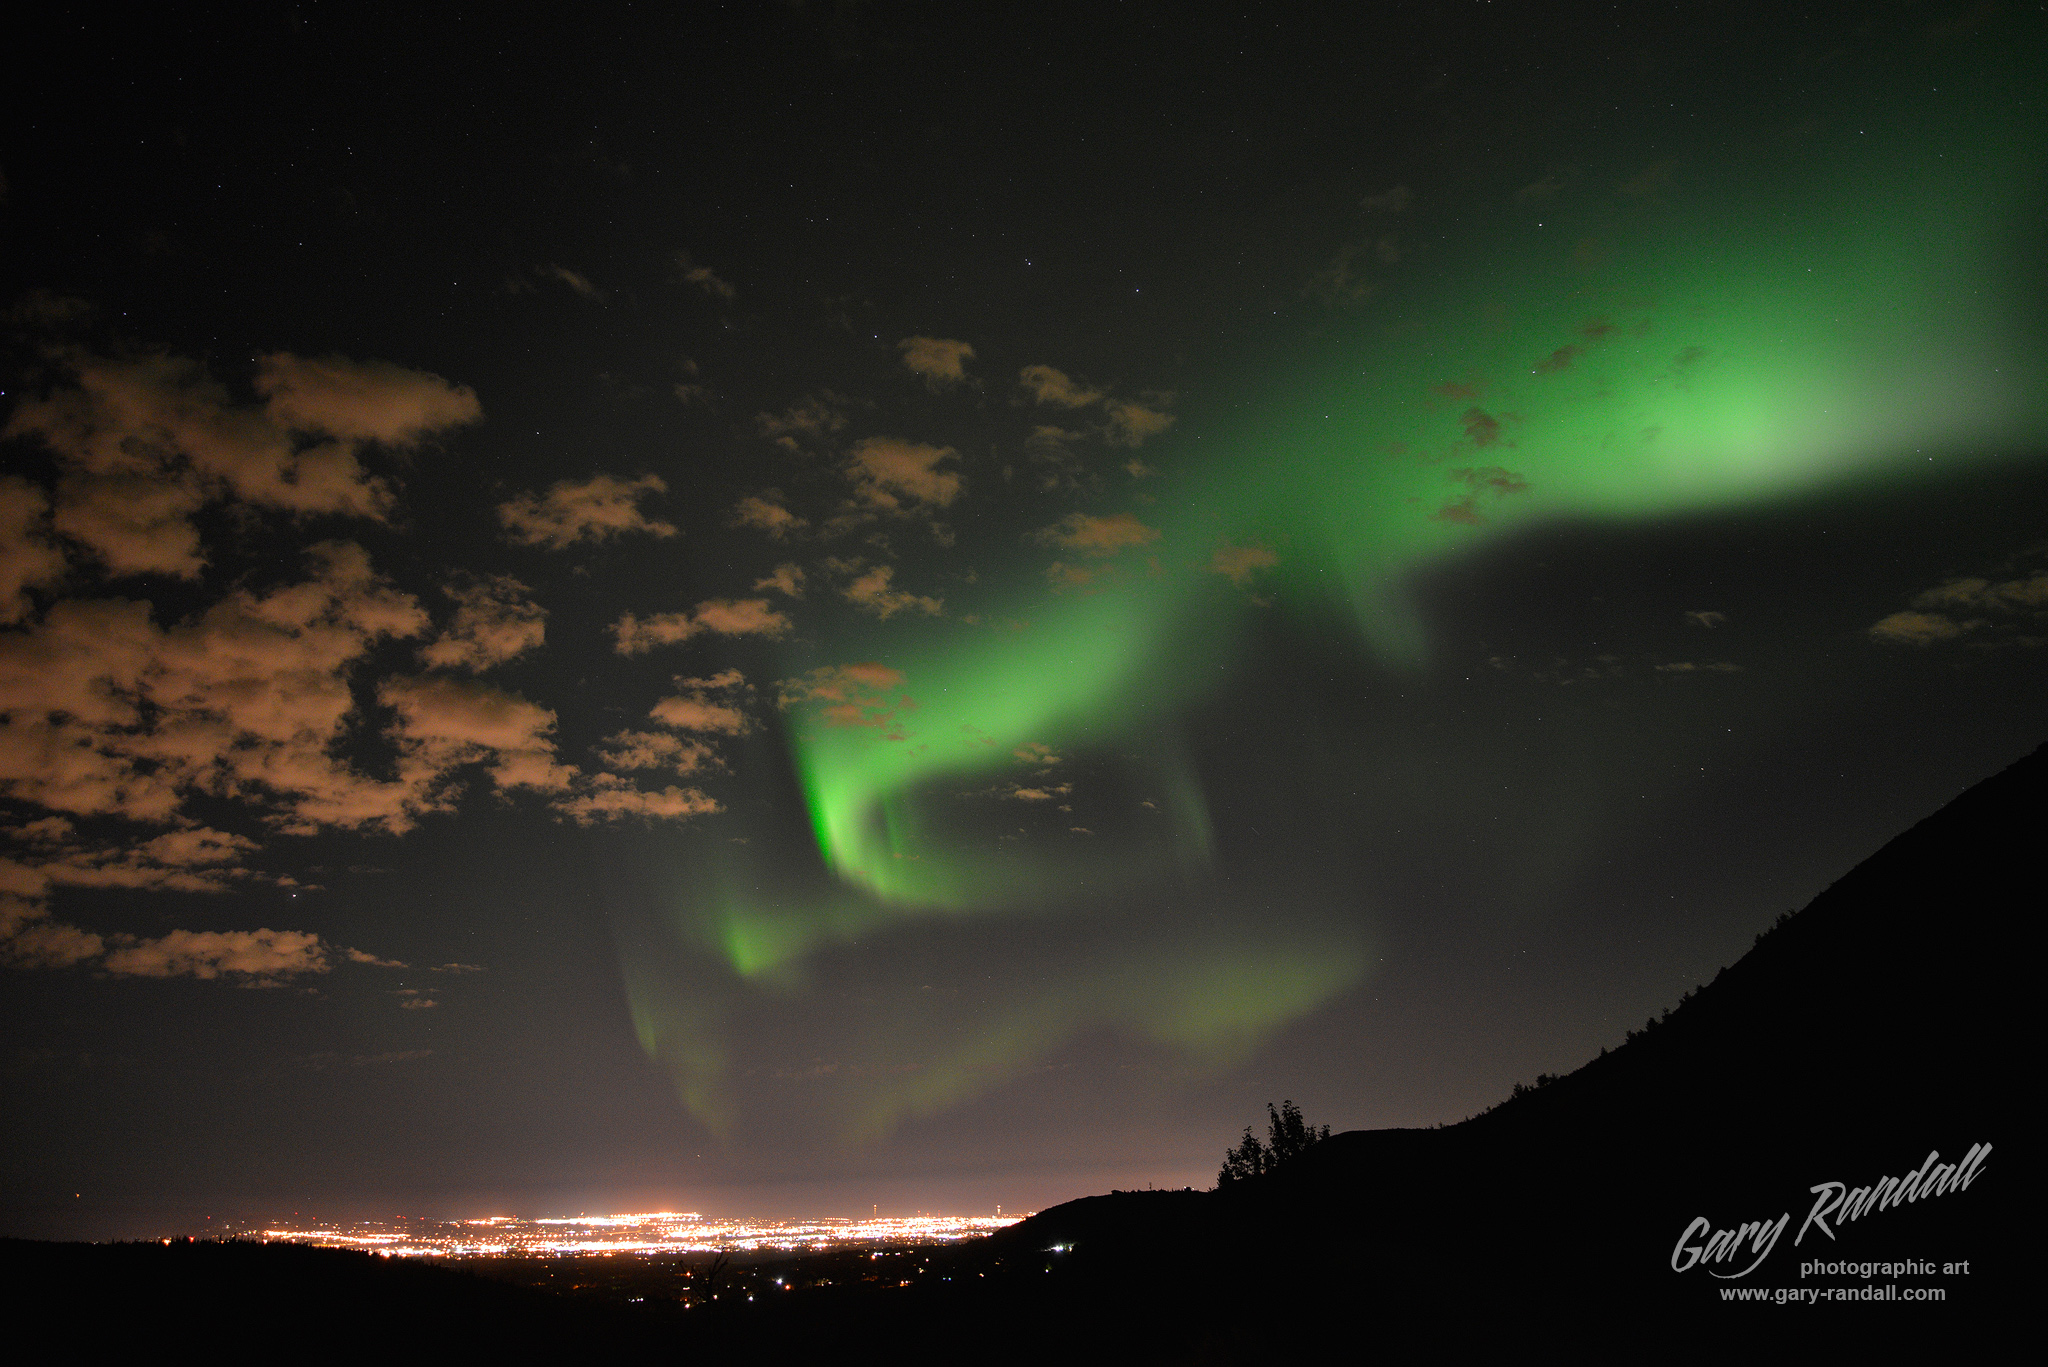 The Northern Lights over Anchorage Alaska